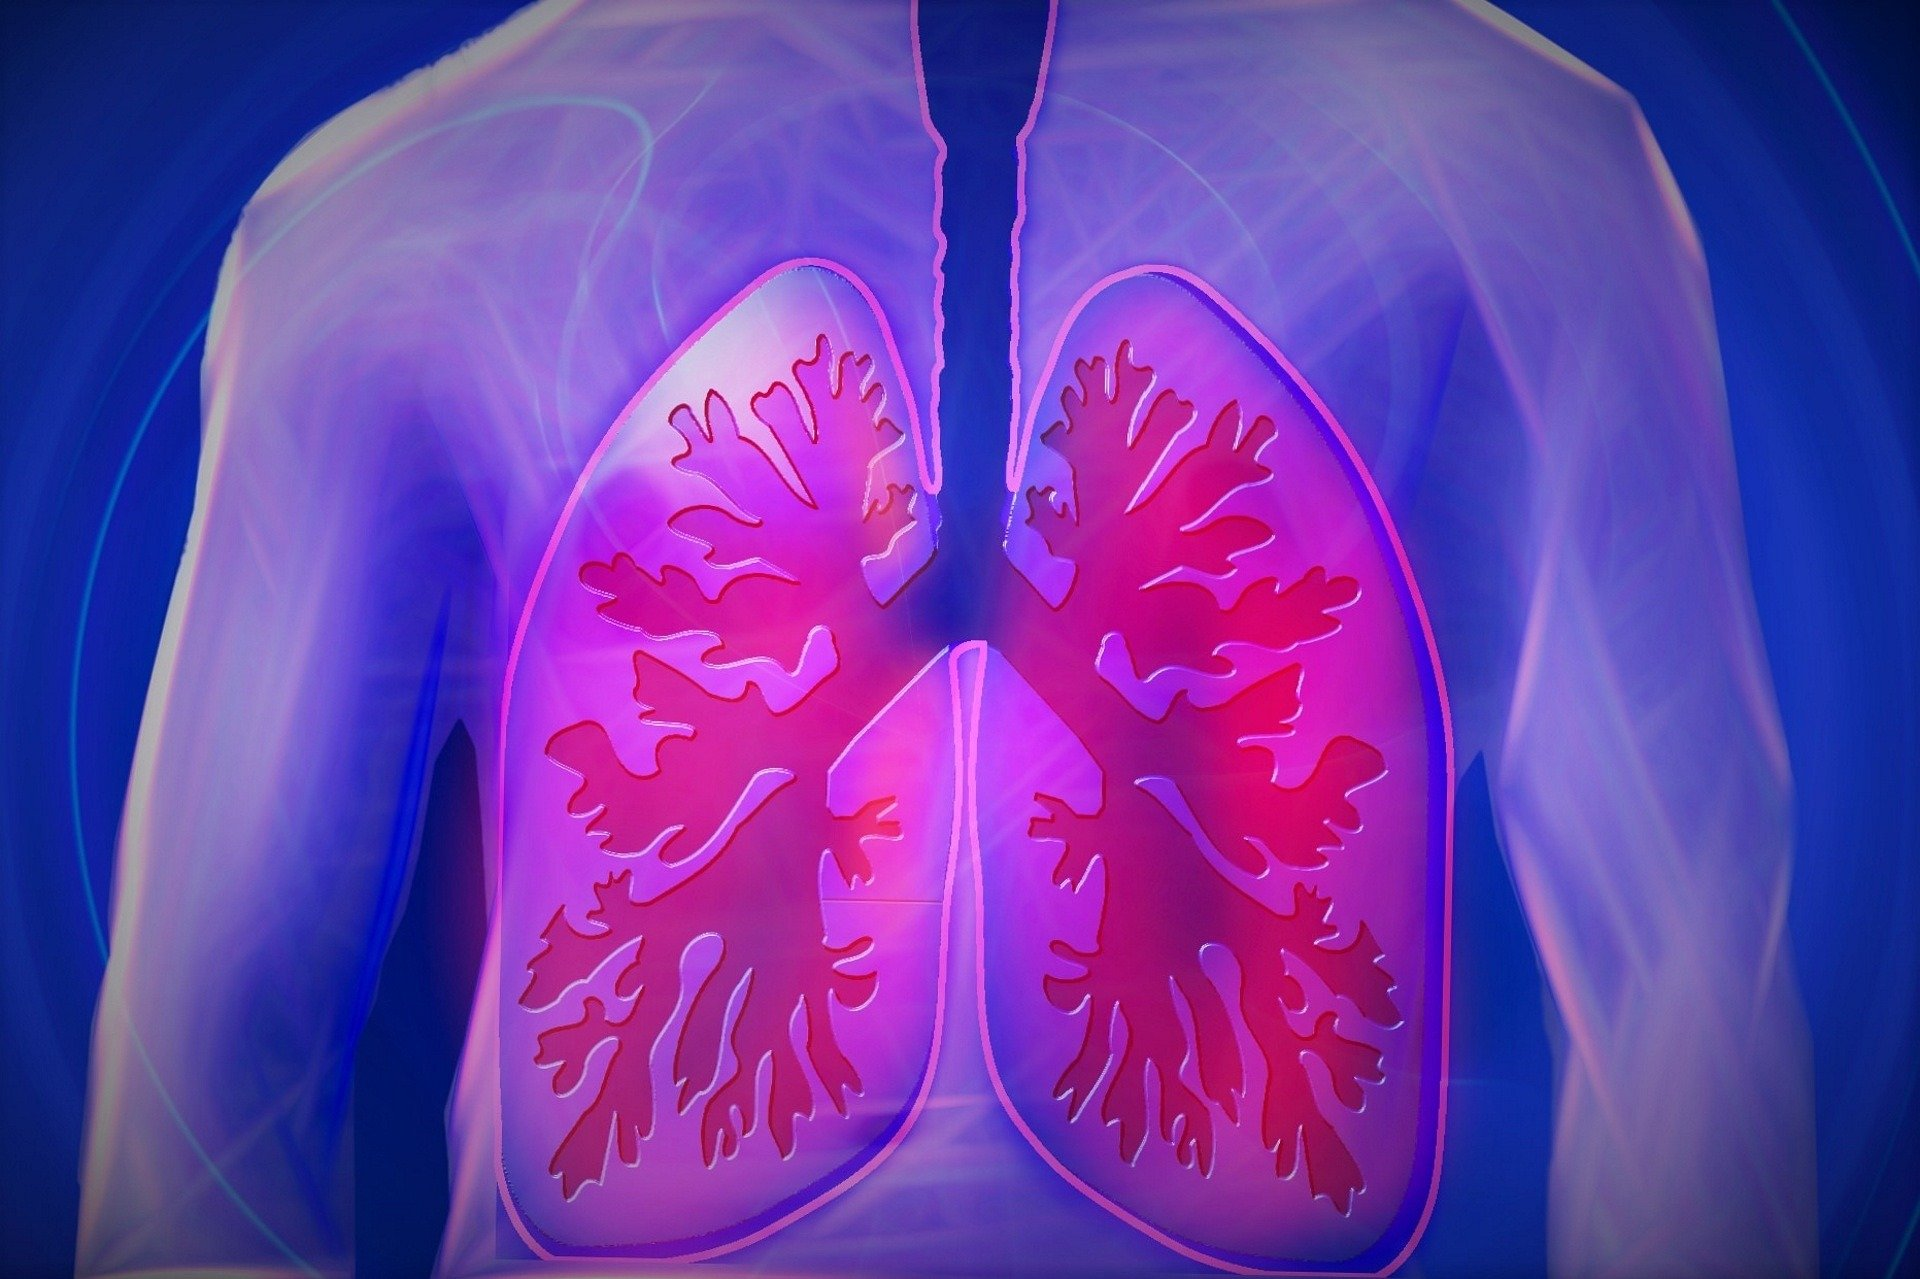 Weight Gain Associated with Accelerated Lung Function Decline in Adulthood